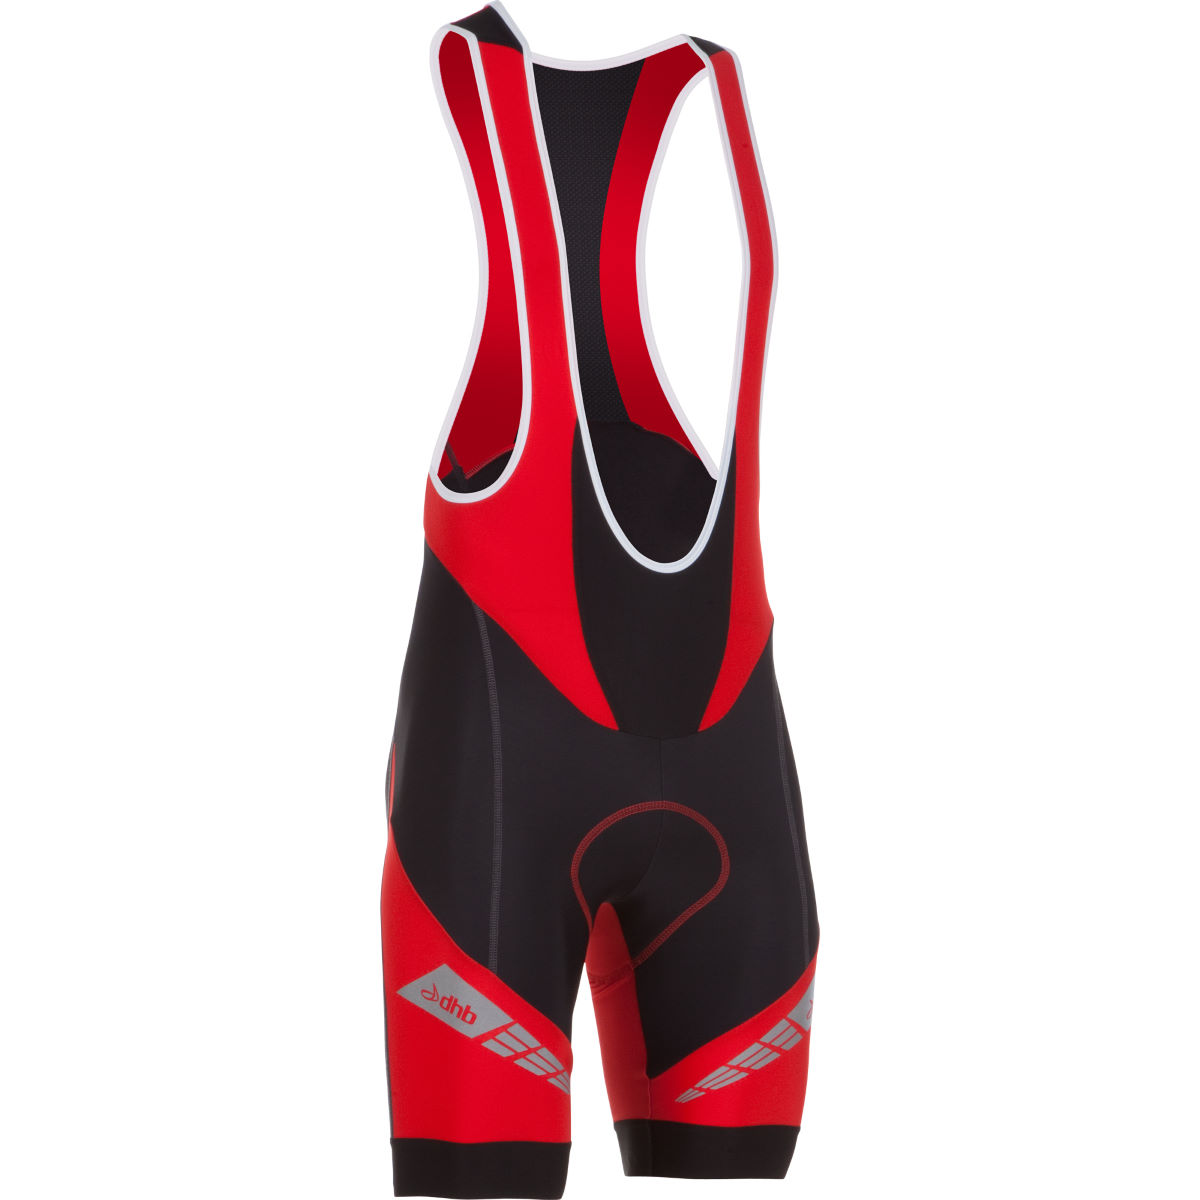 dhb Vaeon Roubaix Pro Padded Bib Short